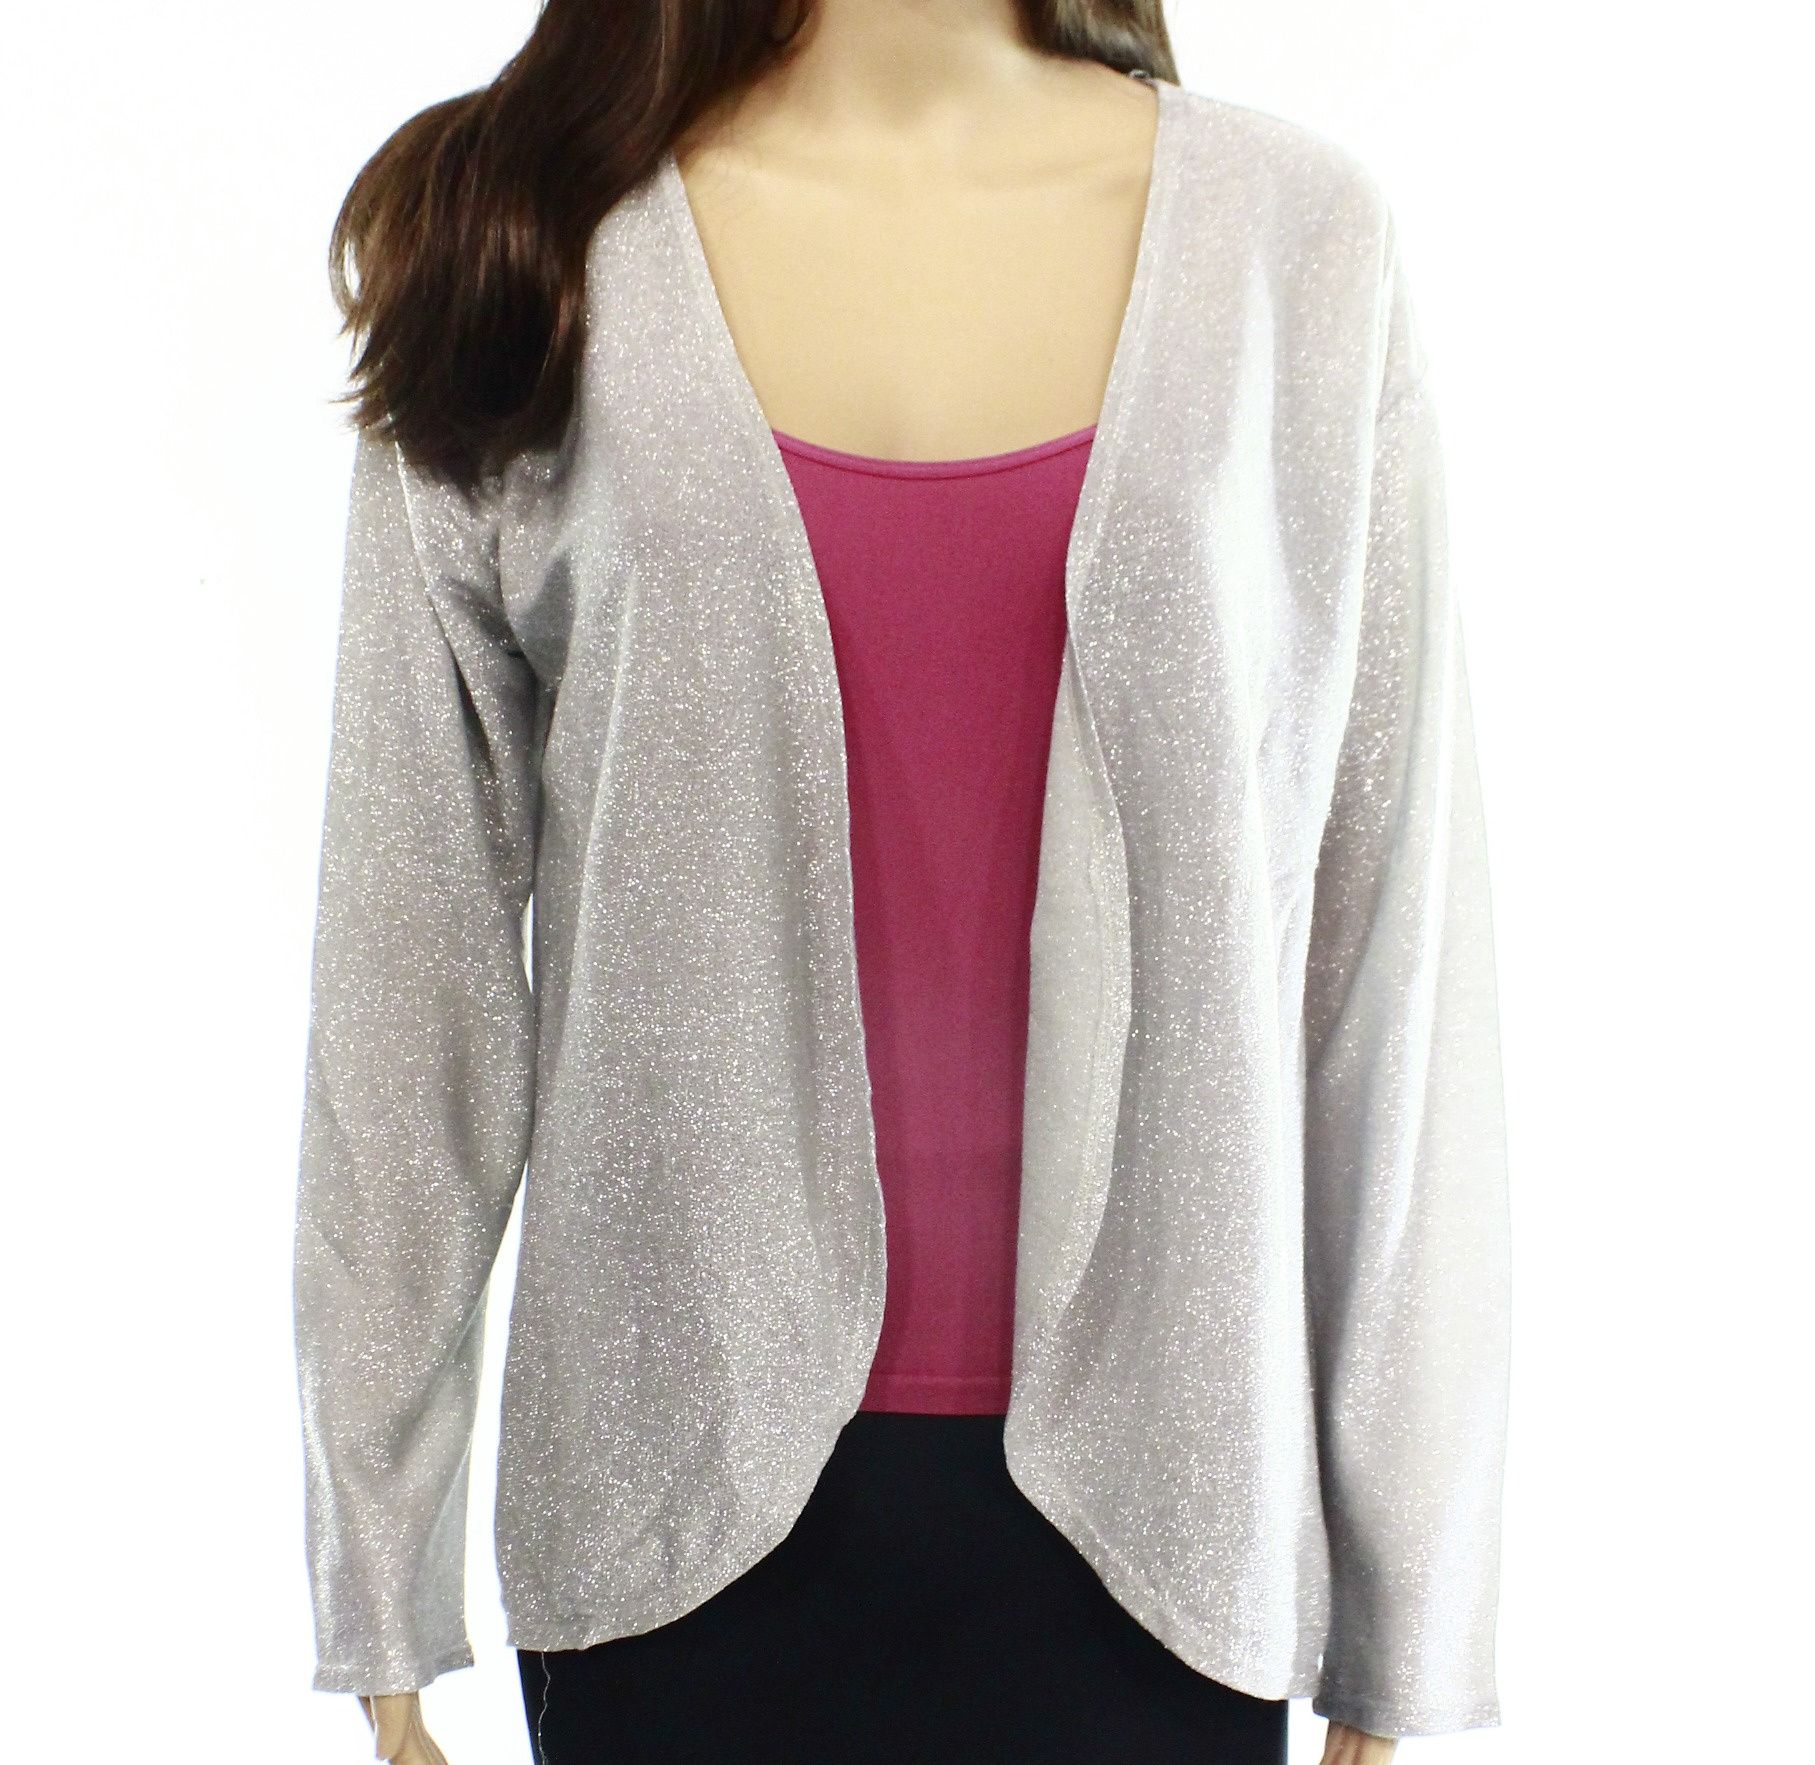 Olivia Sky NEW Silver Shimmer Women's Size Small S Cardigan Sweater